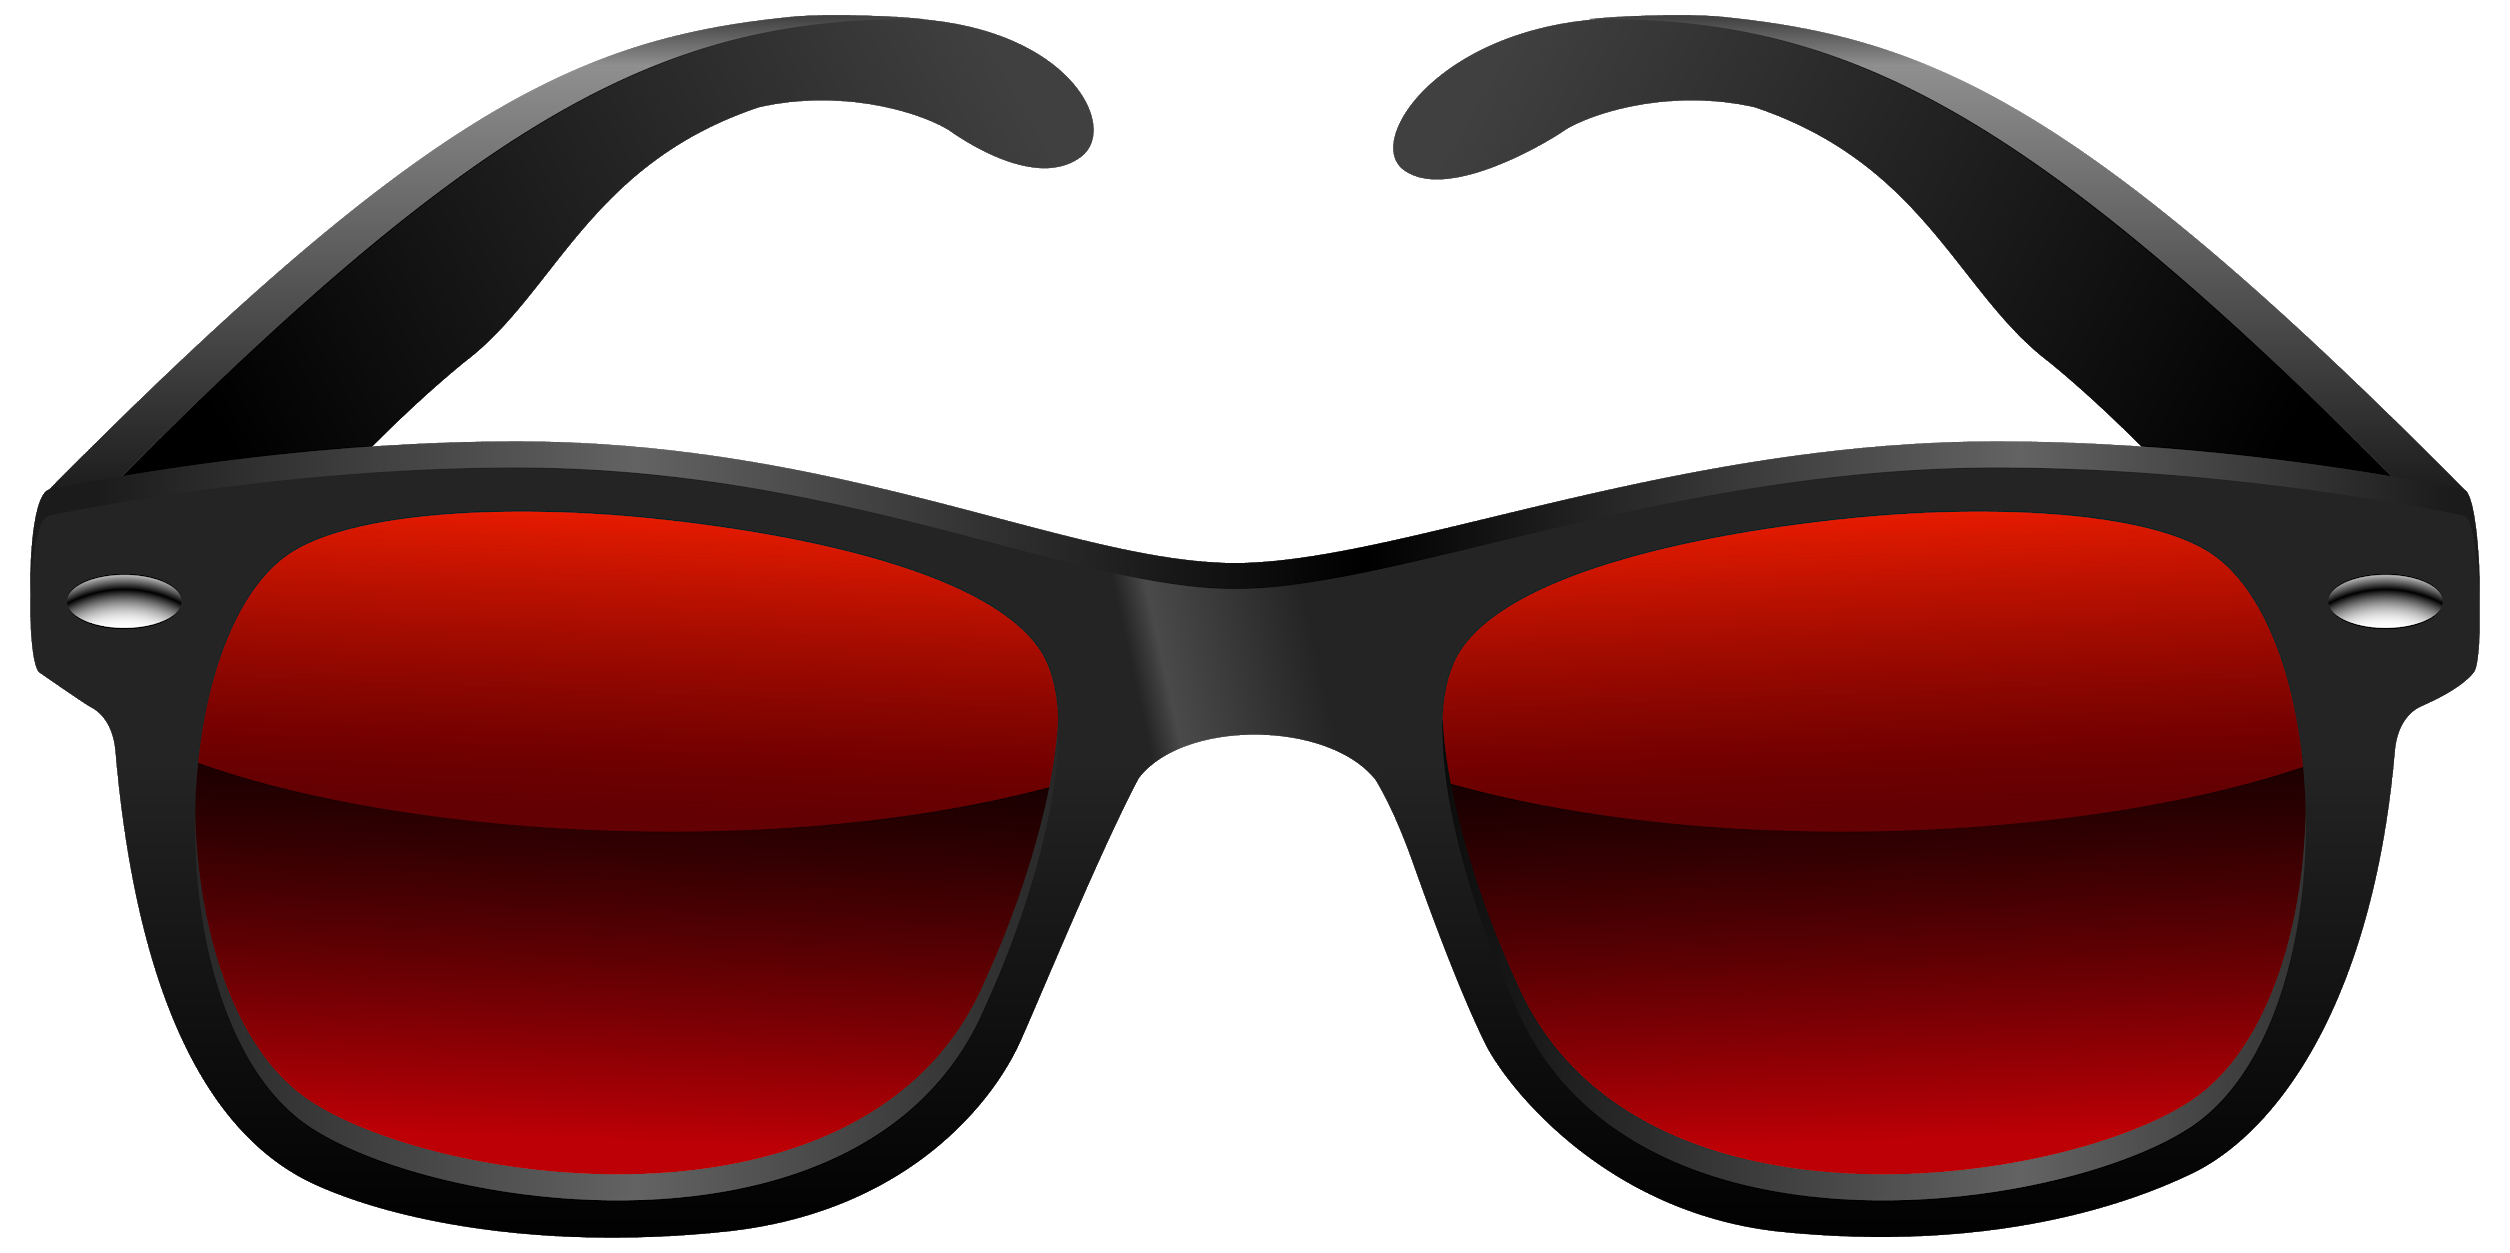 Cb sunglasses clipart download picture transparent download Pin by pngsector on Sunglasses Images - Glasses PNG image in 2019 ... picture transparent download